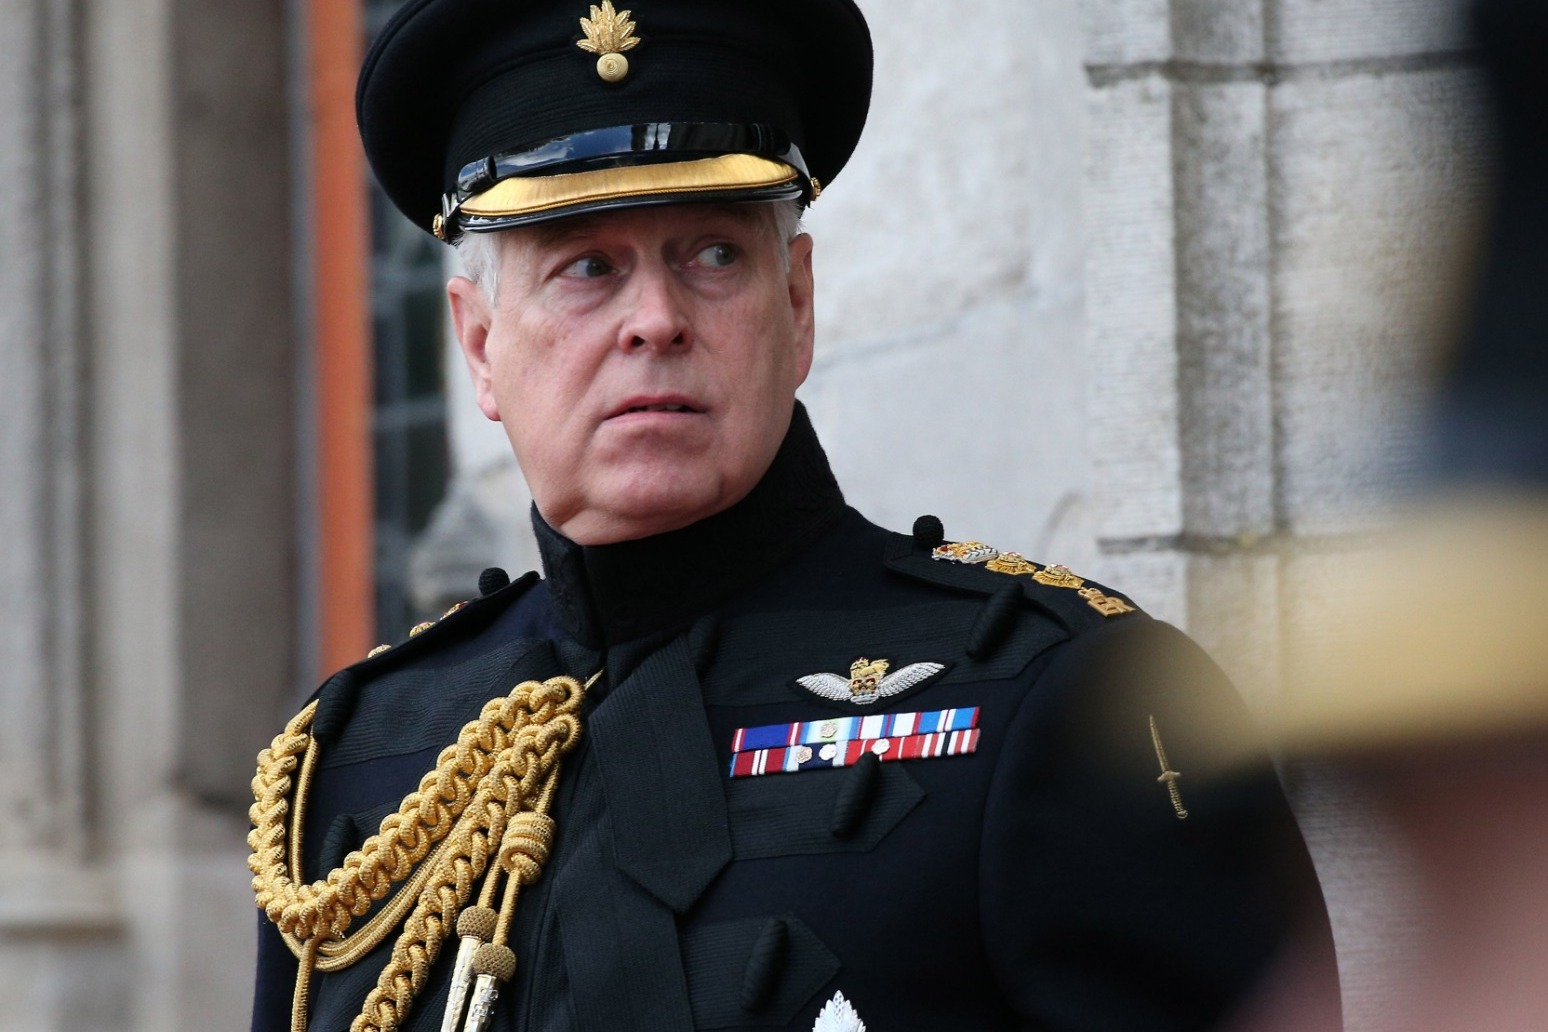 PRINCE ANDREW TO TAKE A STEP BACK FROM PUBLIC LIFE